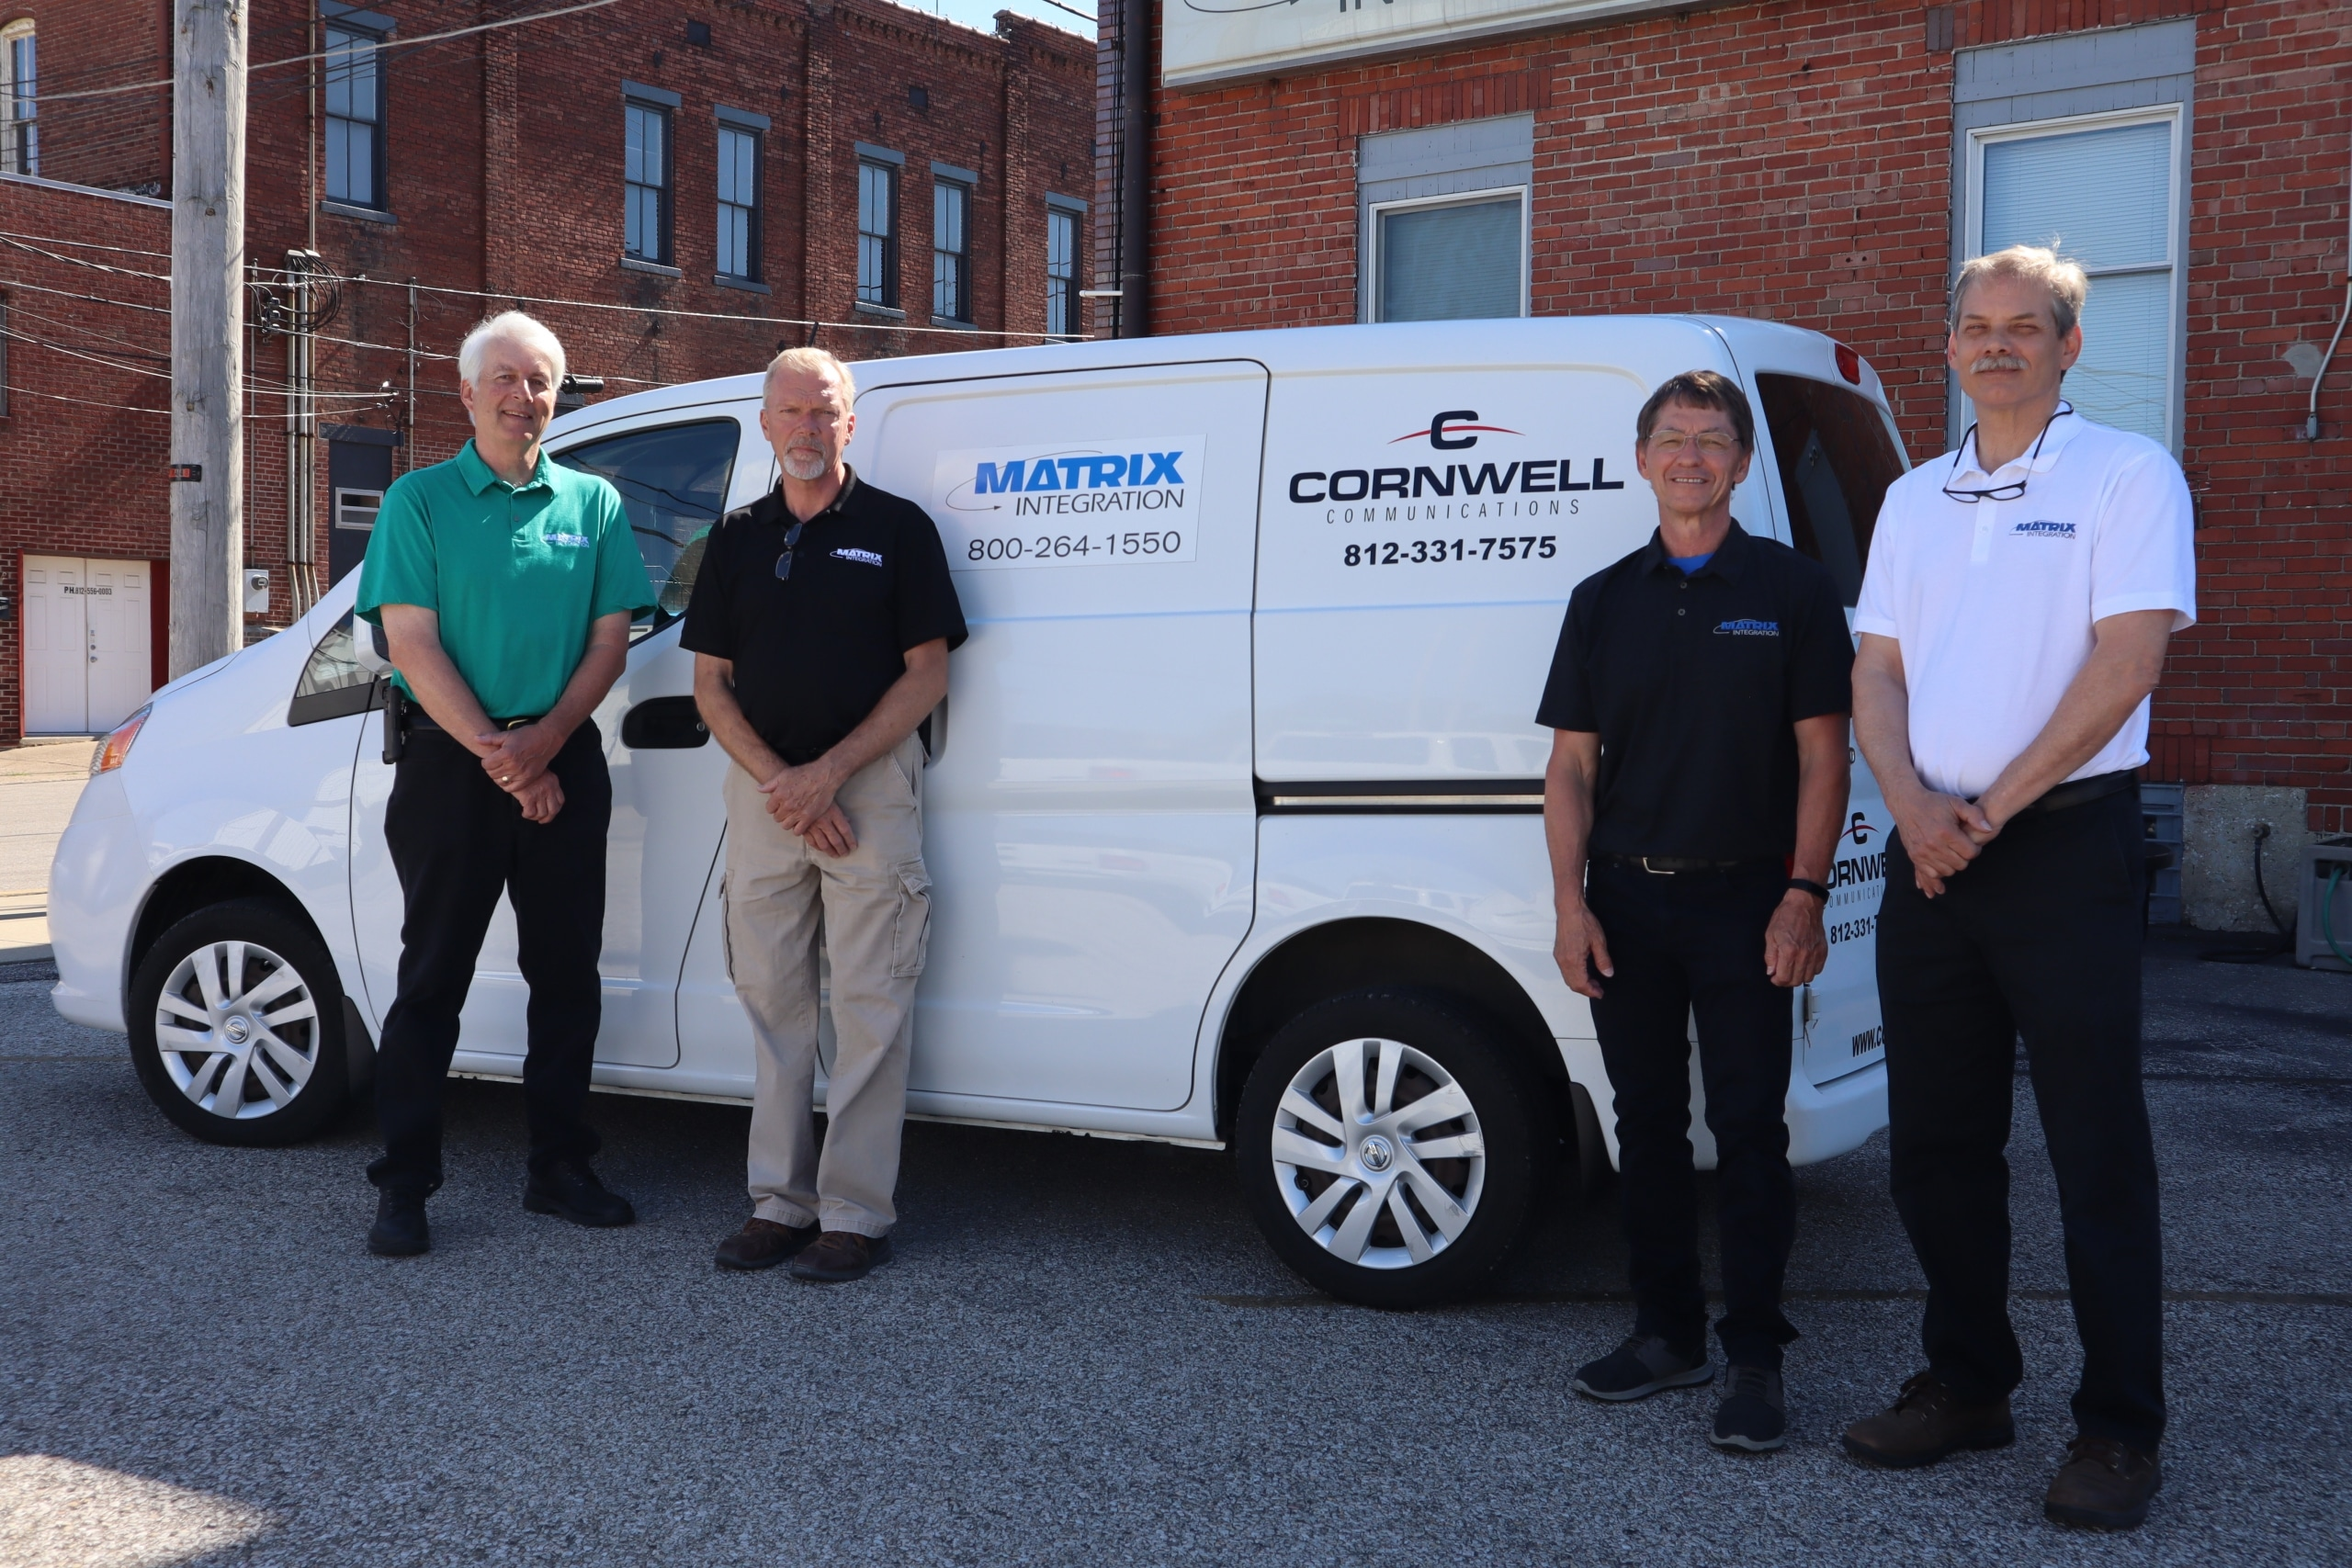 Cornwell Communications is now Matrix Integration with new Vehicle logo